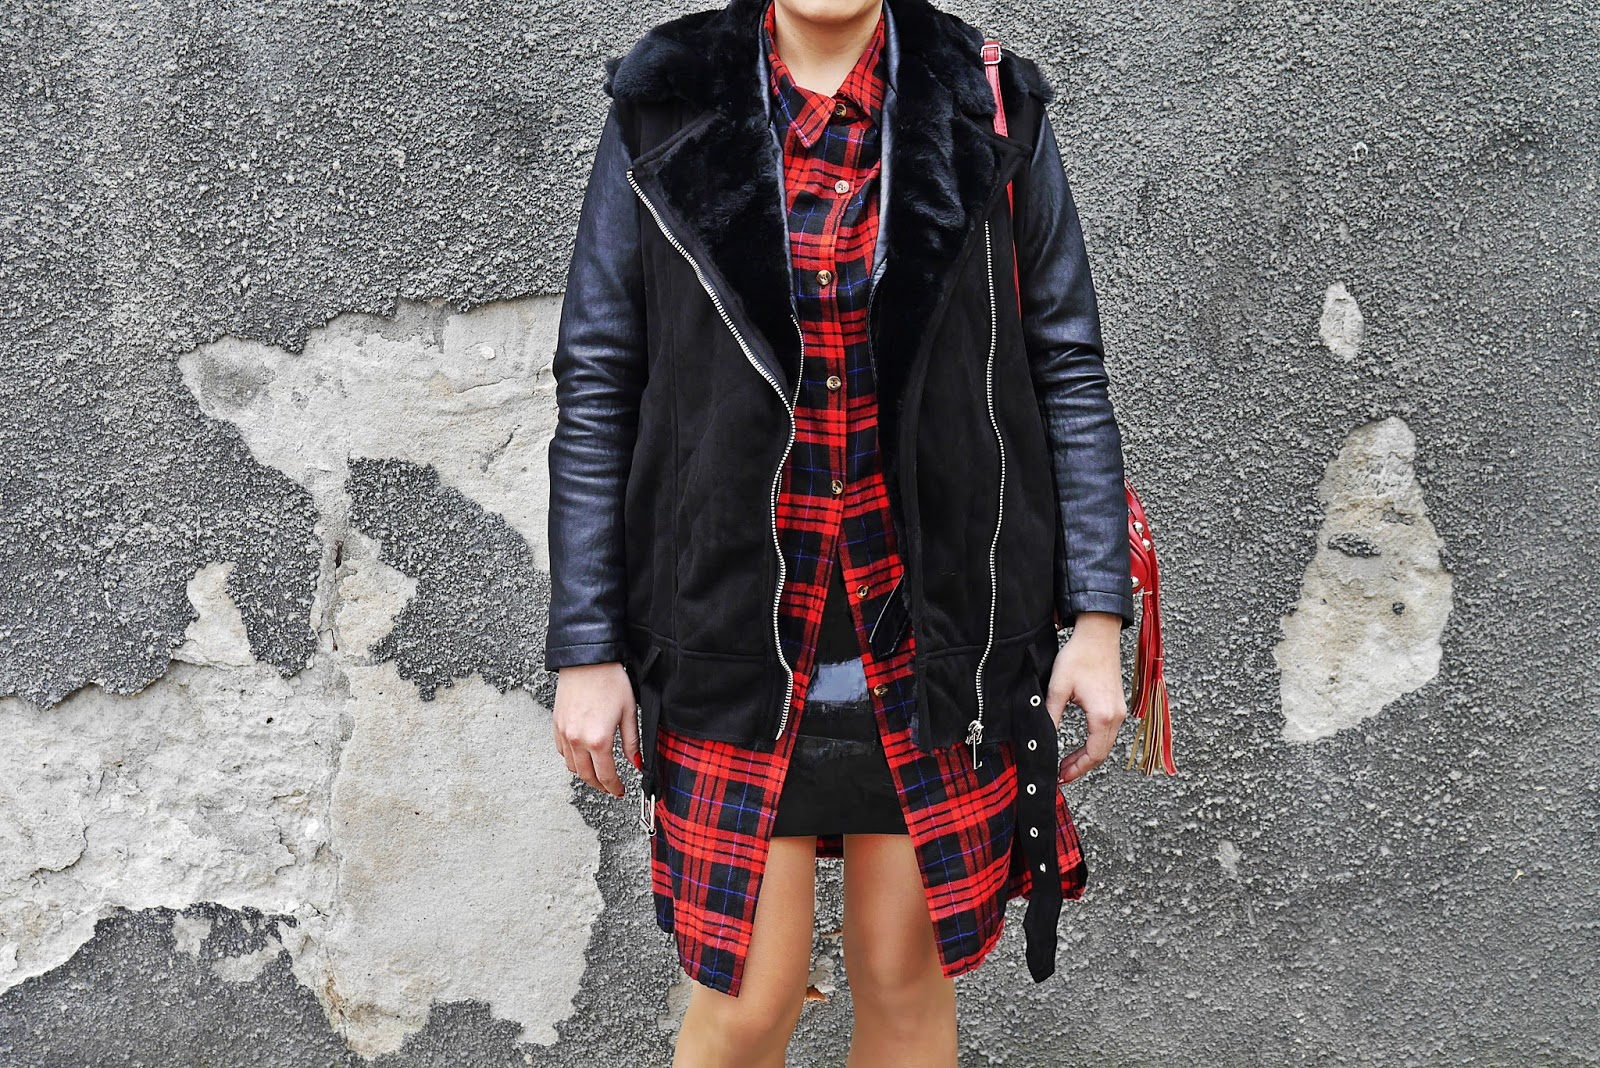 6_zara_west_fur_red_plaid_dress_socks_boots_karyn_blog_modowy_021117